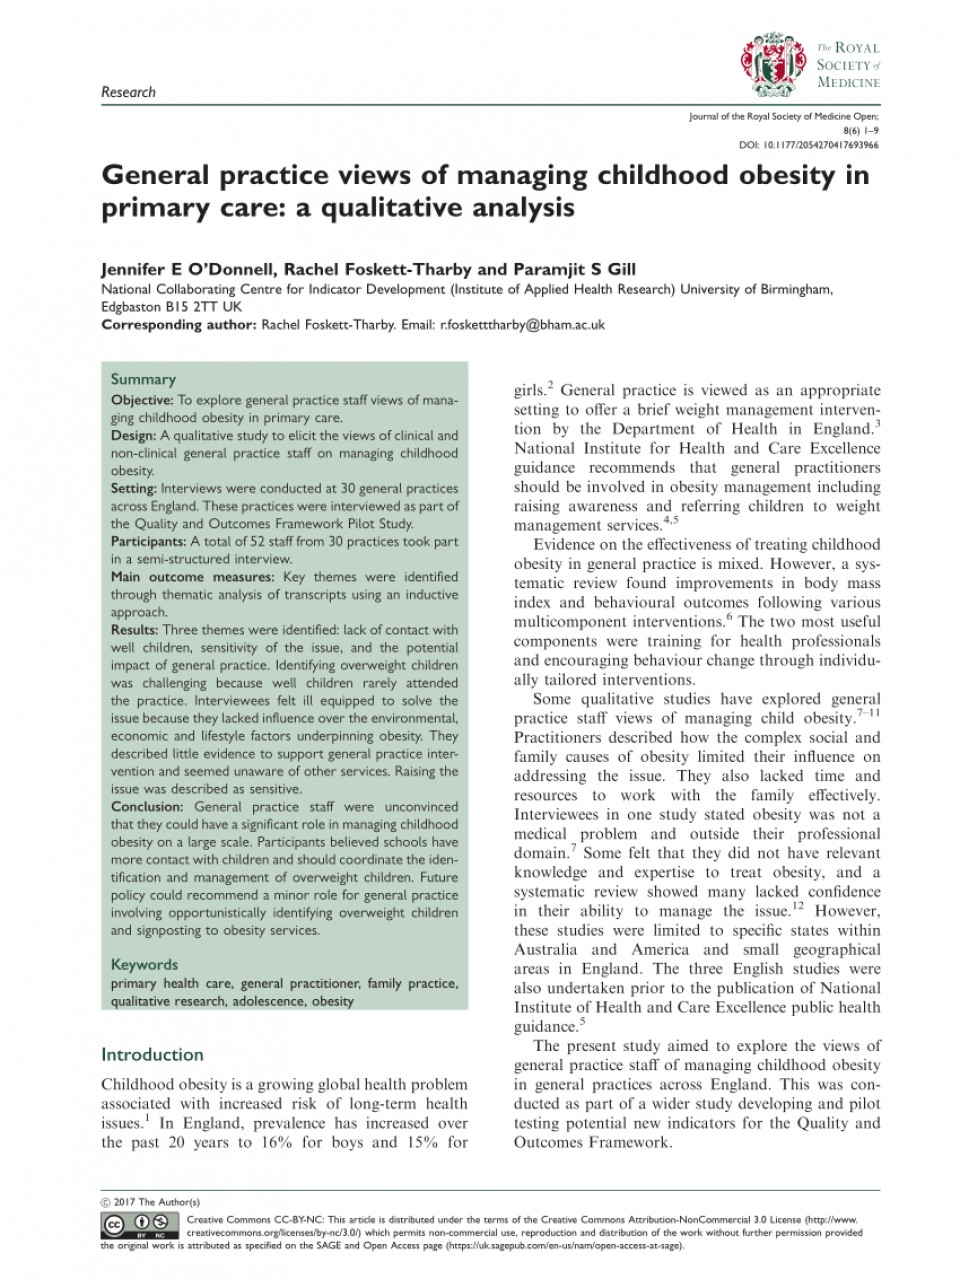 008 Primary Research Article On Childhood Obesity Paper Imposing 960